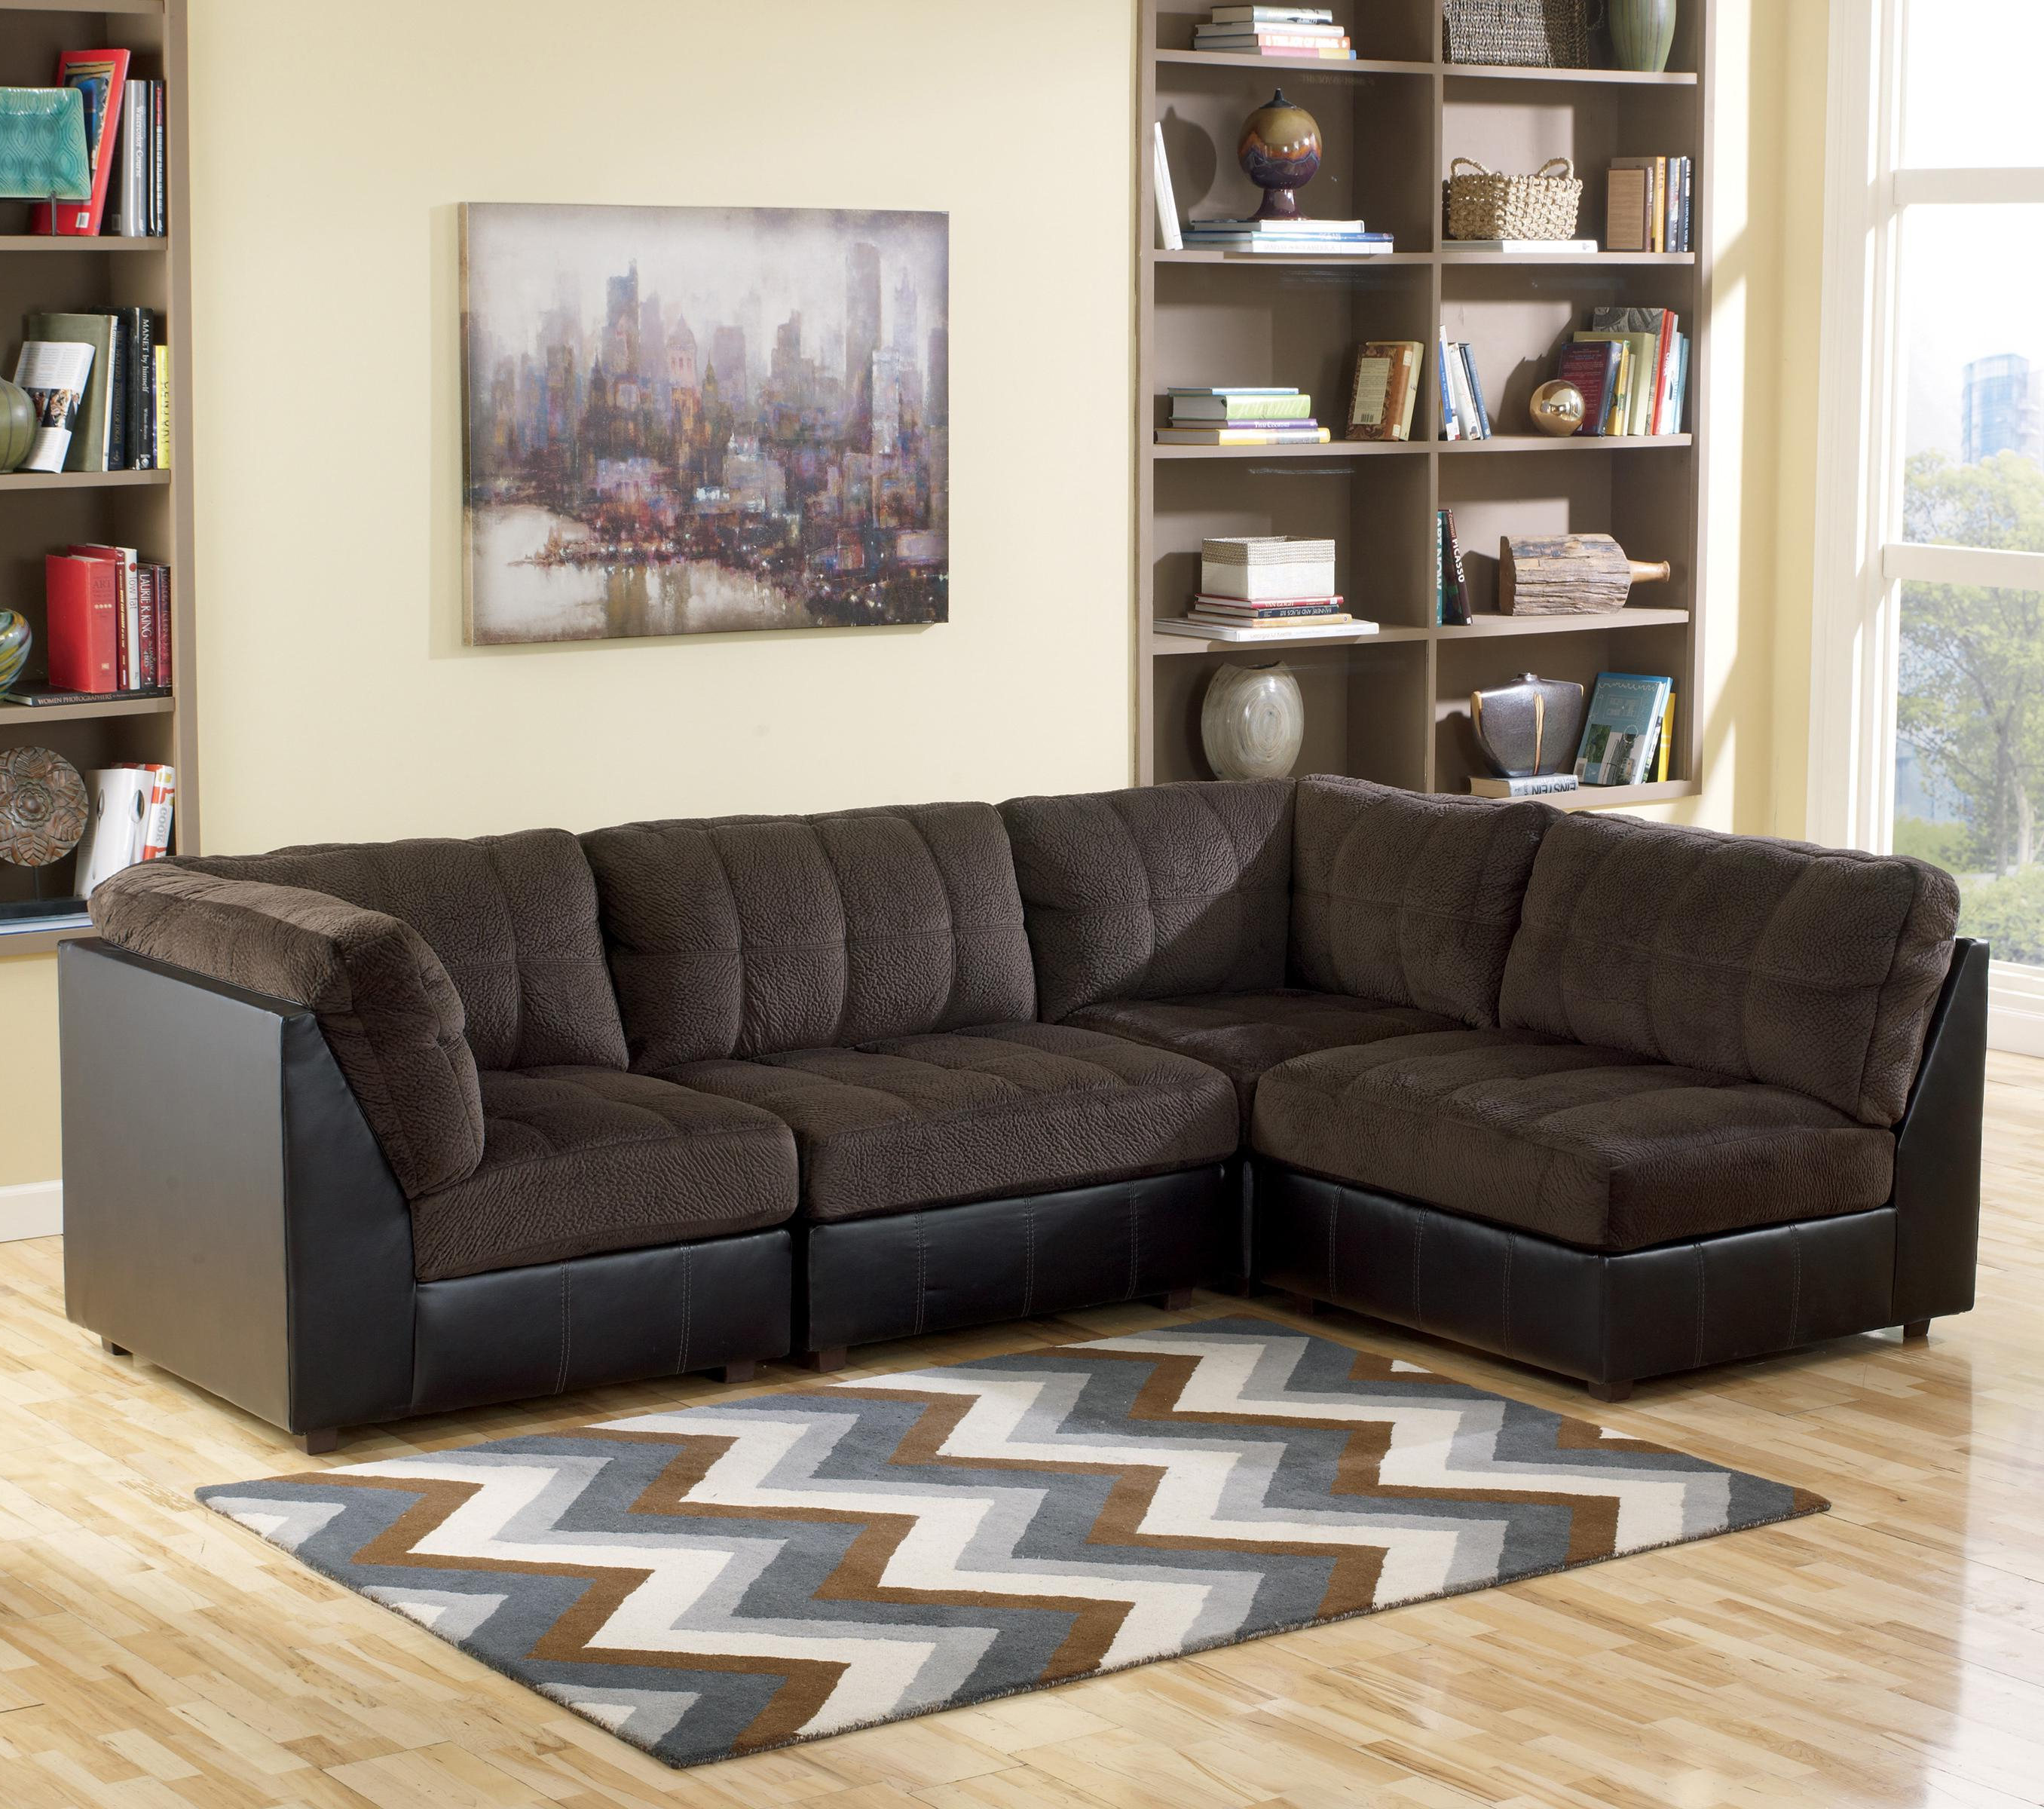 Most Recently Released Signature Designashley Hobokin – Chocolate Contemporary 4 Piece Within Norfolk Chocolate 6 Piece Sectionals With Raf Chaise (View 19 of 20)